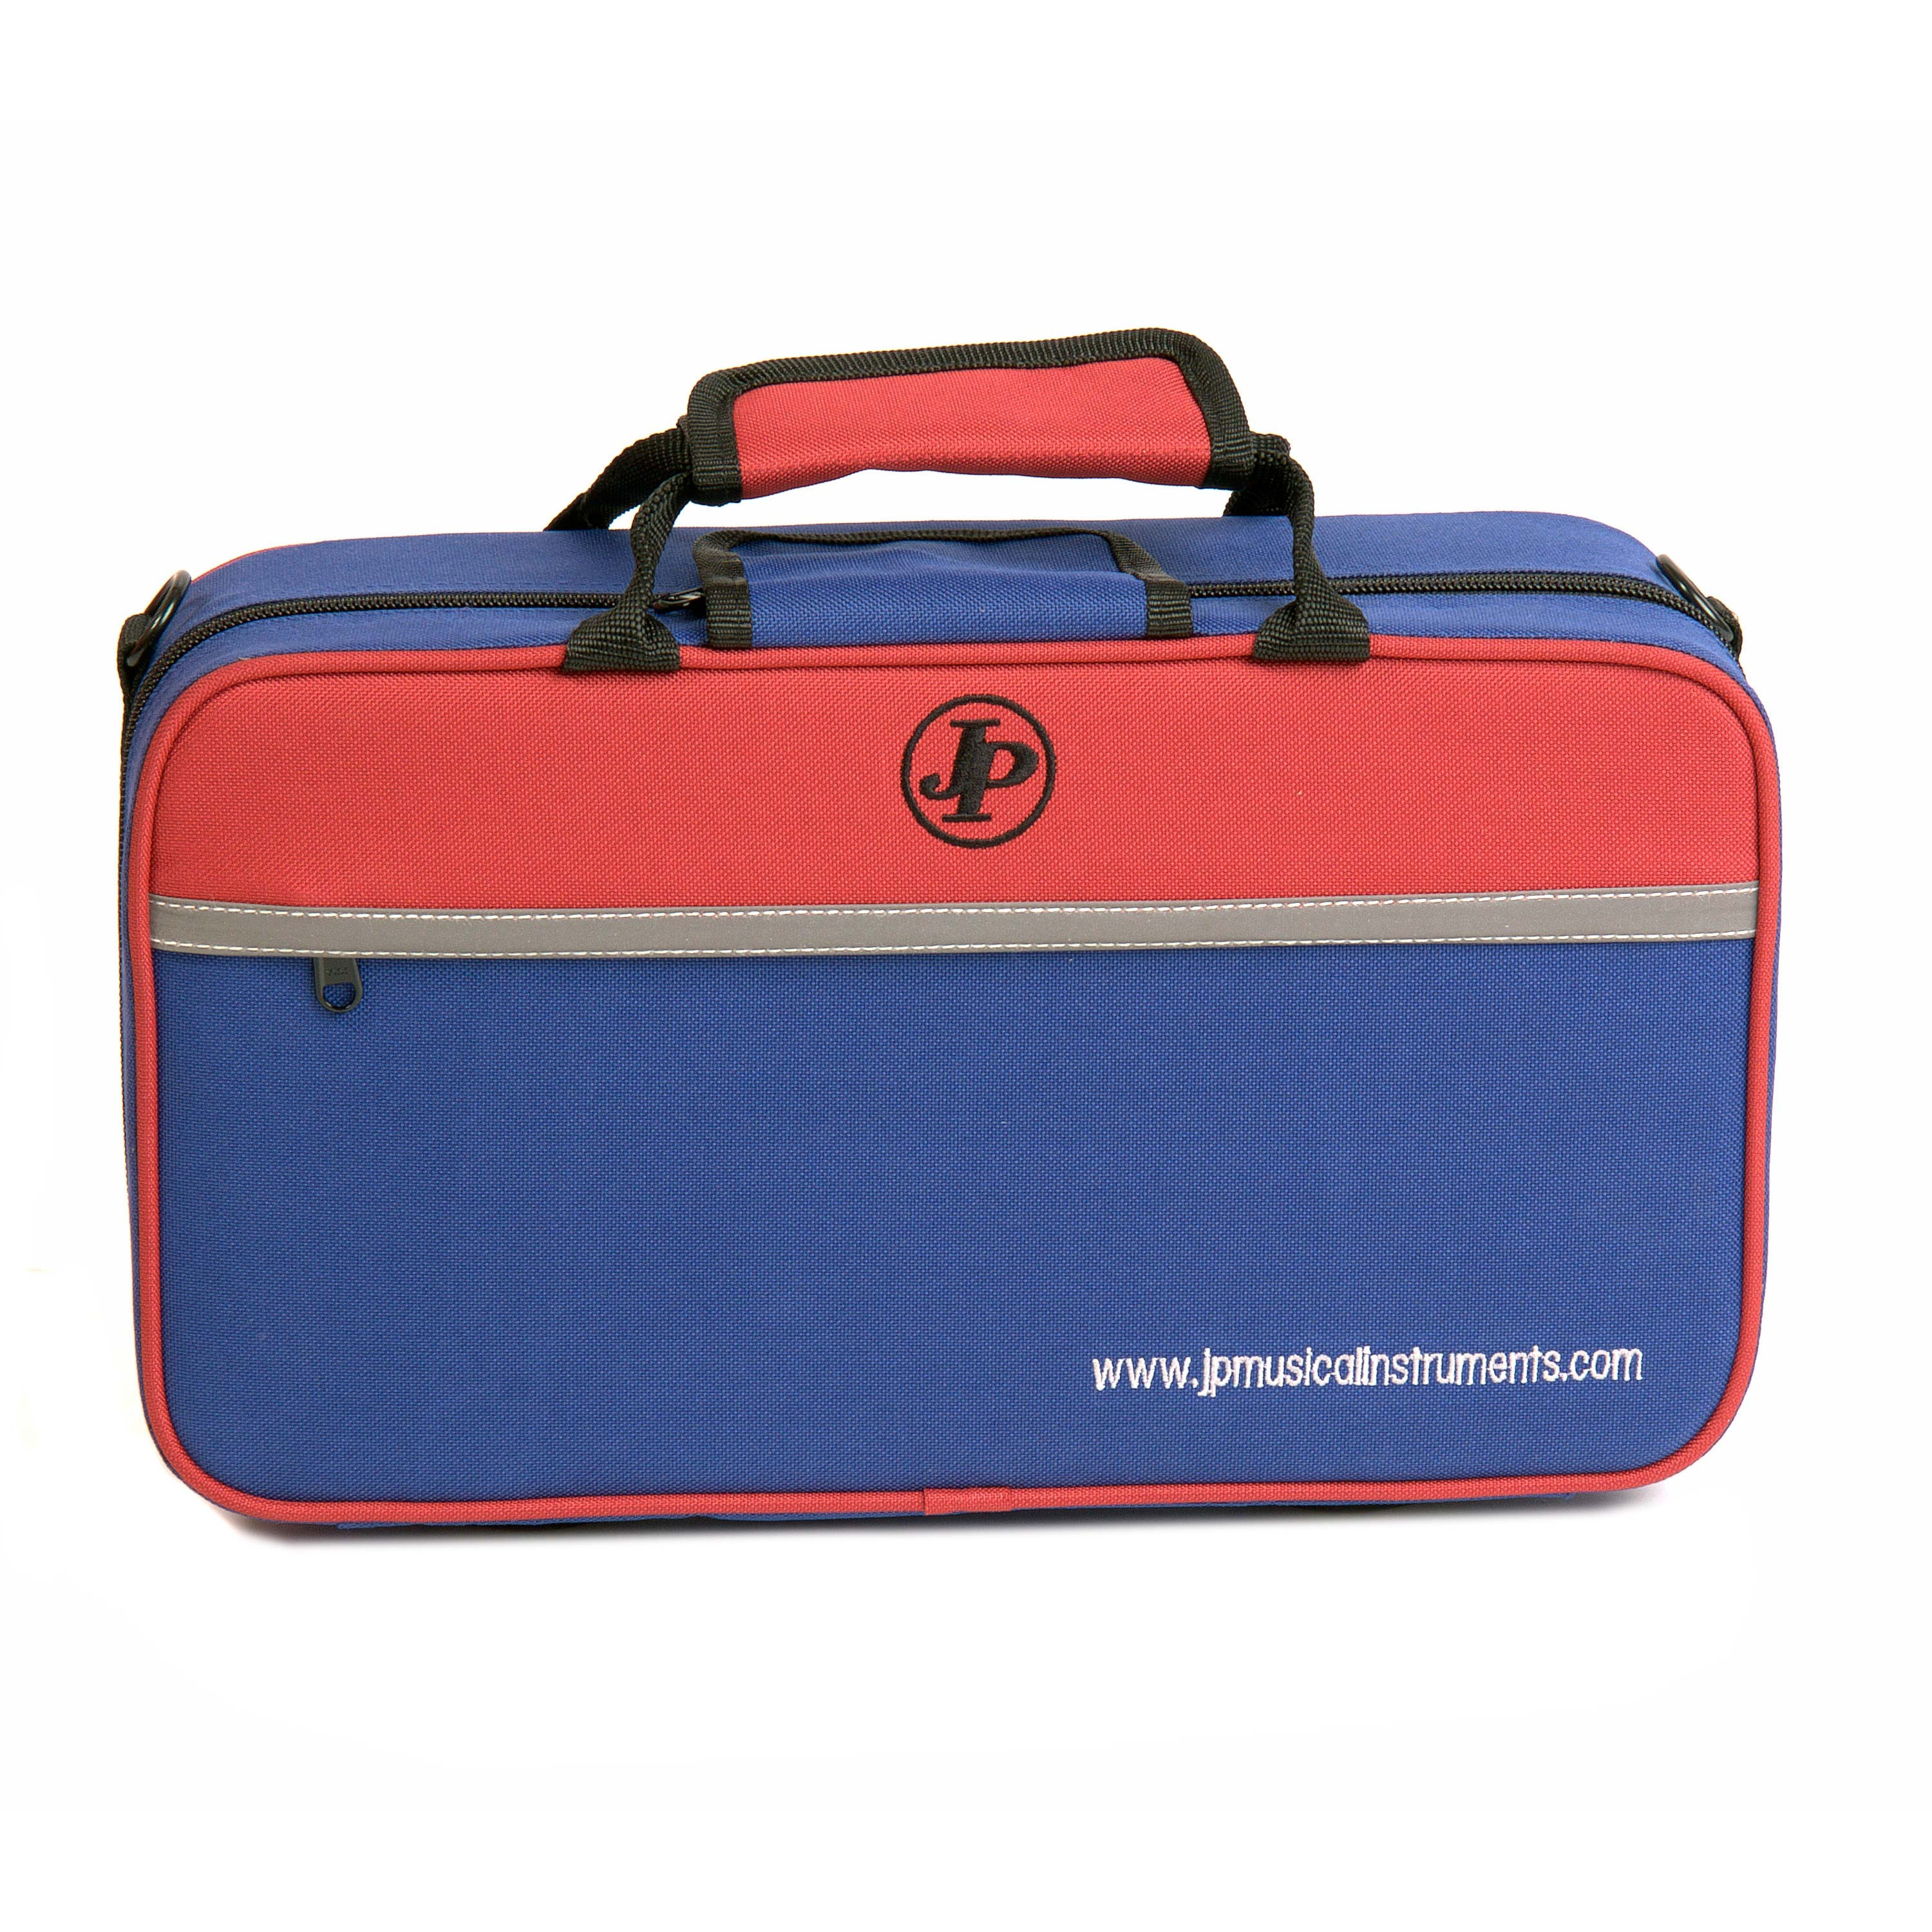 John Packer JP021 case